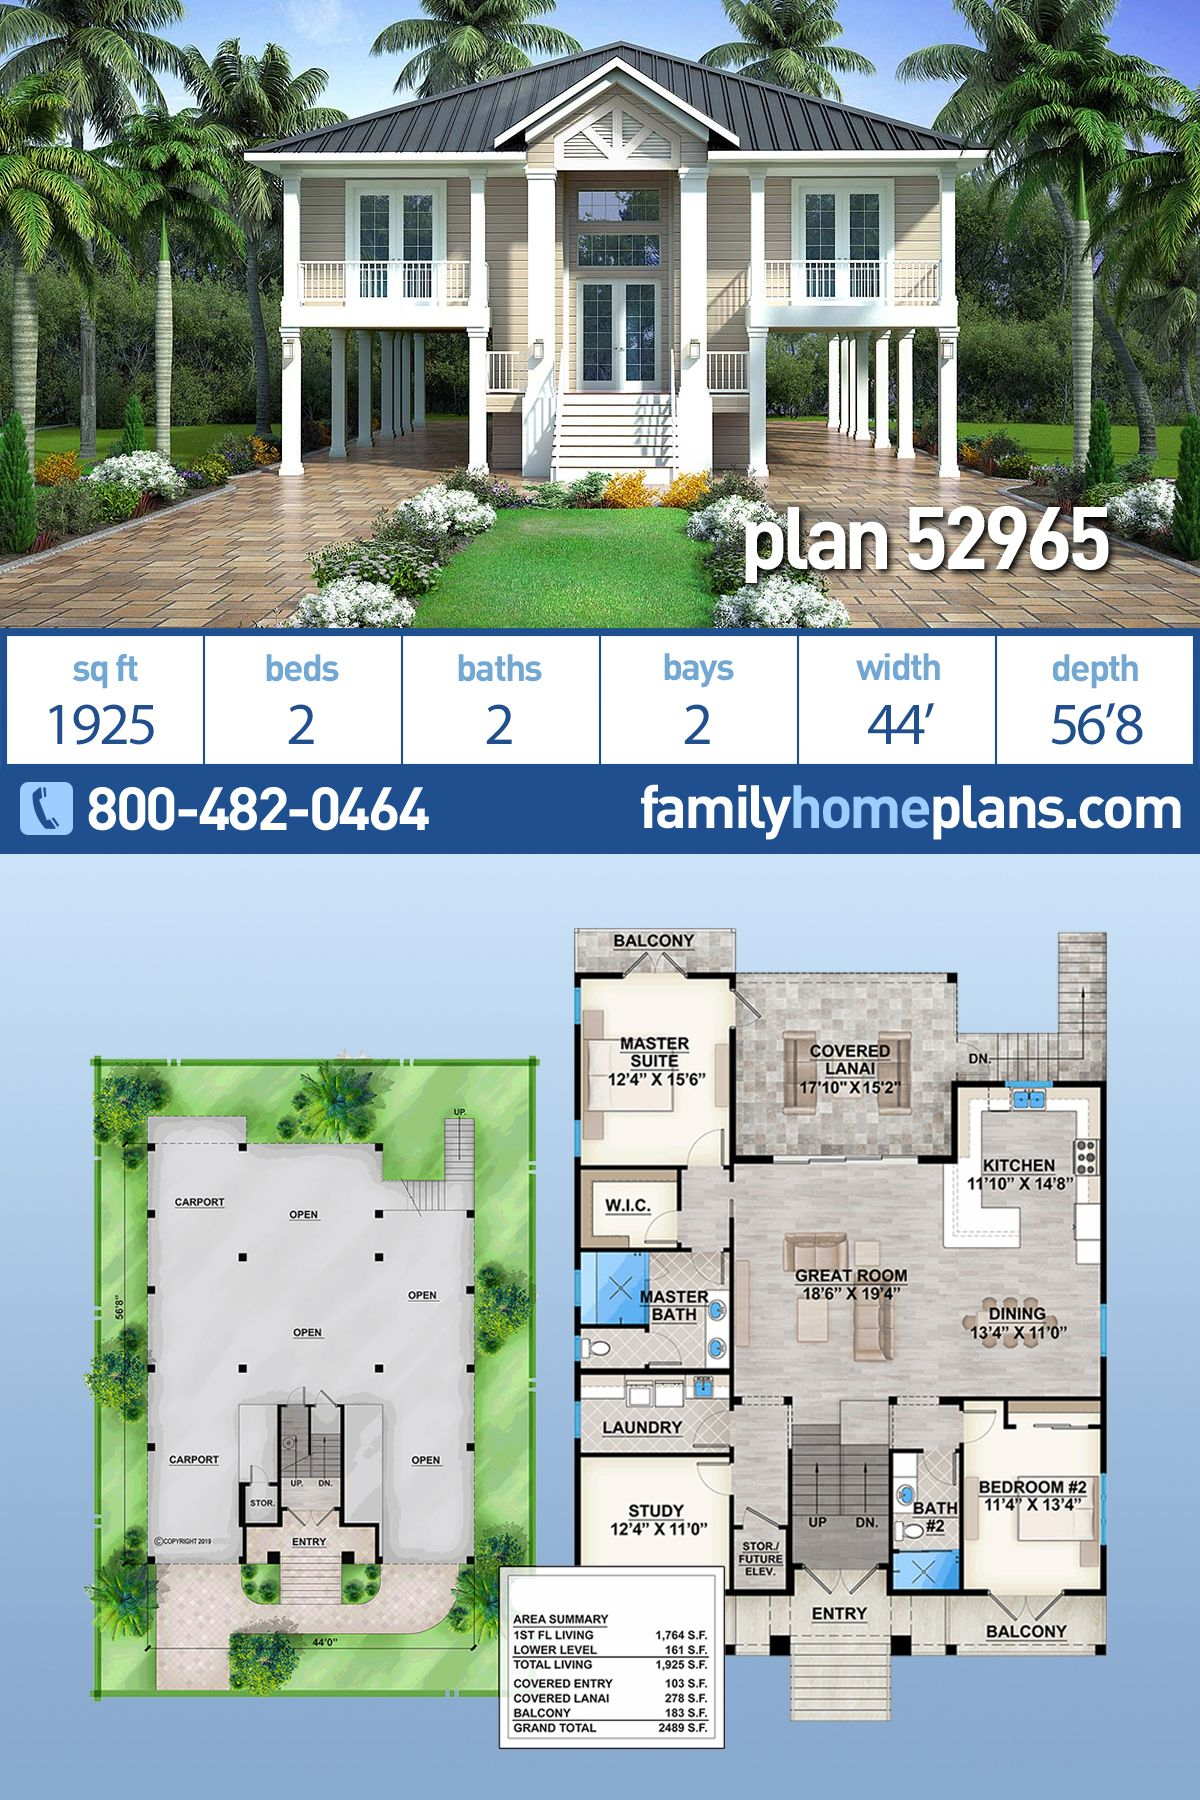 Southern Style House Plan 52965 With 2 Bed 2 Bath 2 Car Garage Coastal House Plans Beach House Floor Plans Vacation House Plans